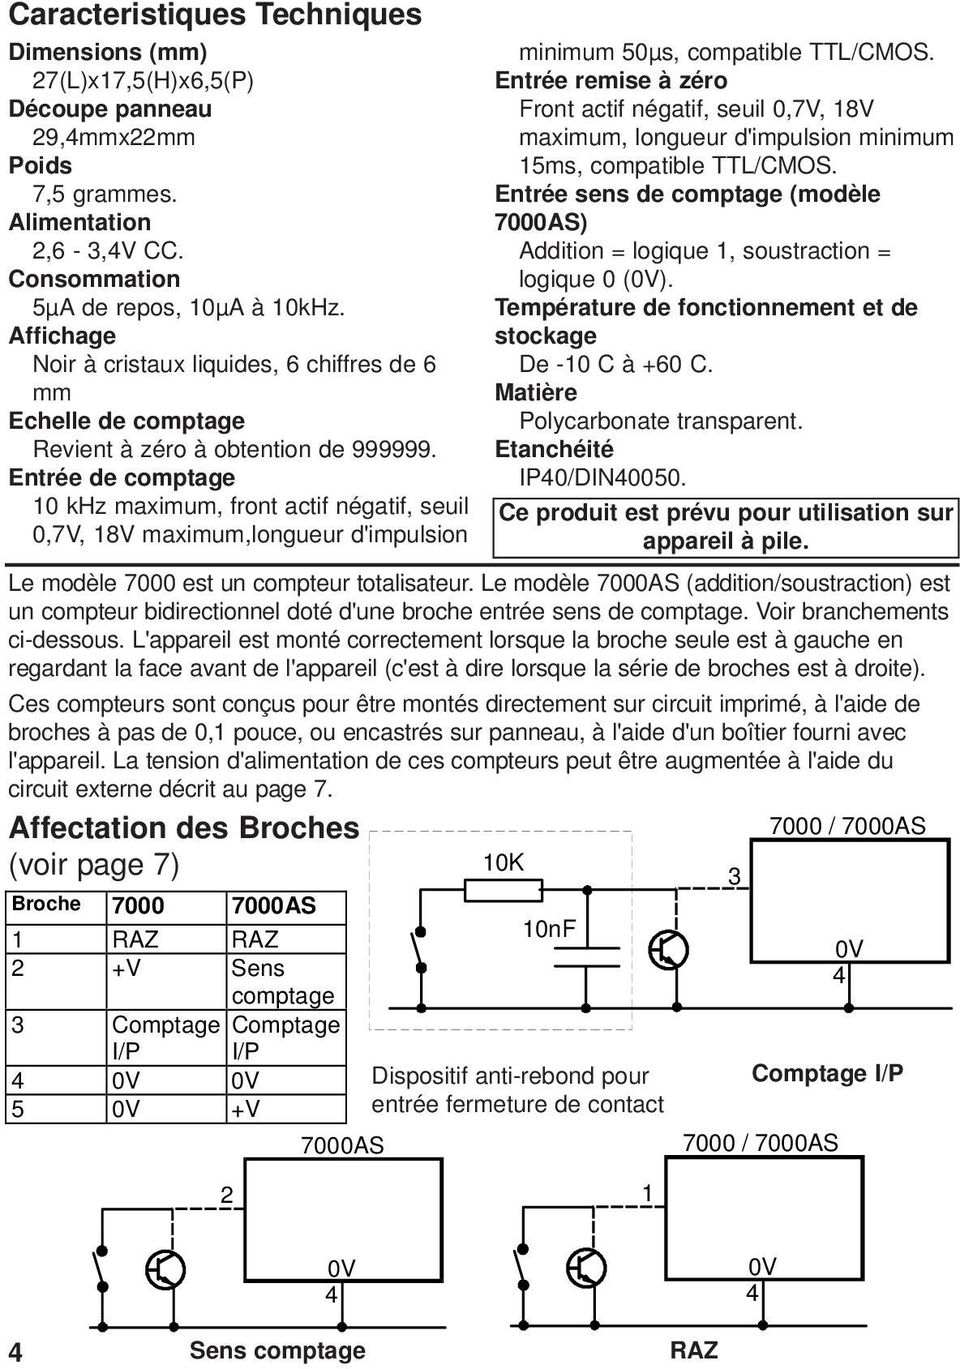 Entrée de comptage 0 khz maximum, front actif négatif, seuil 0,7V, 8V maximum,longueur d'impulsion minimum 50µs, compatible TTL/CMOS.